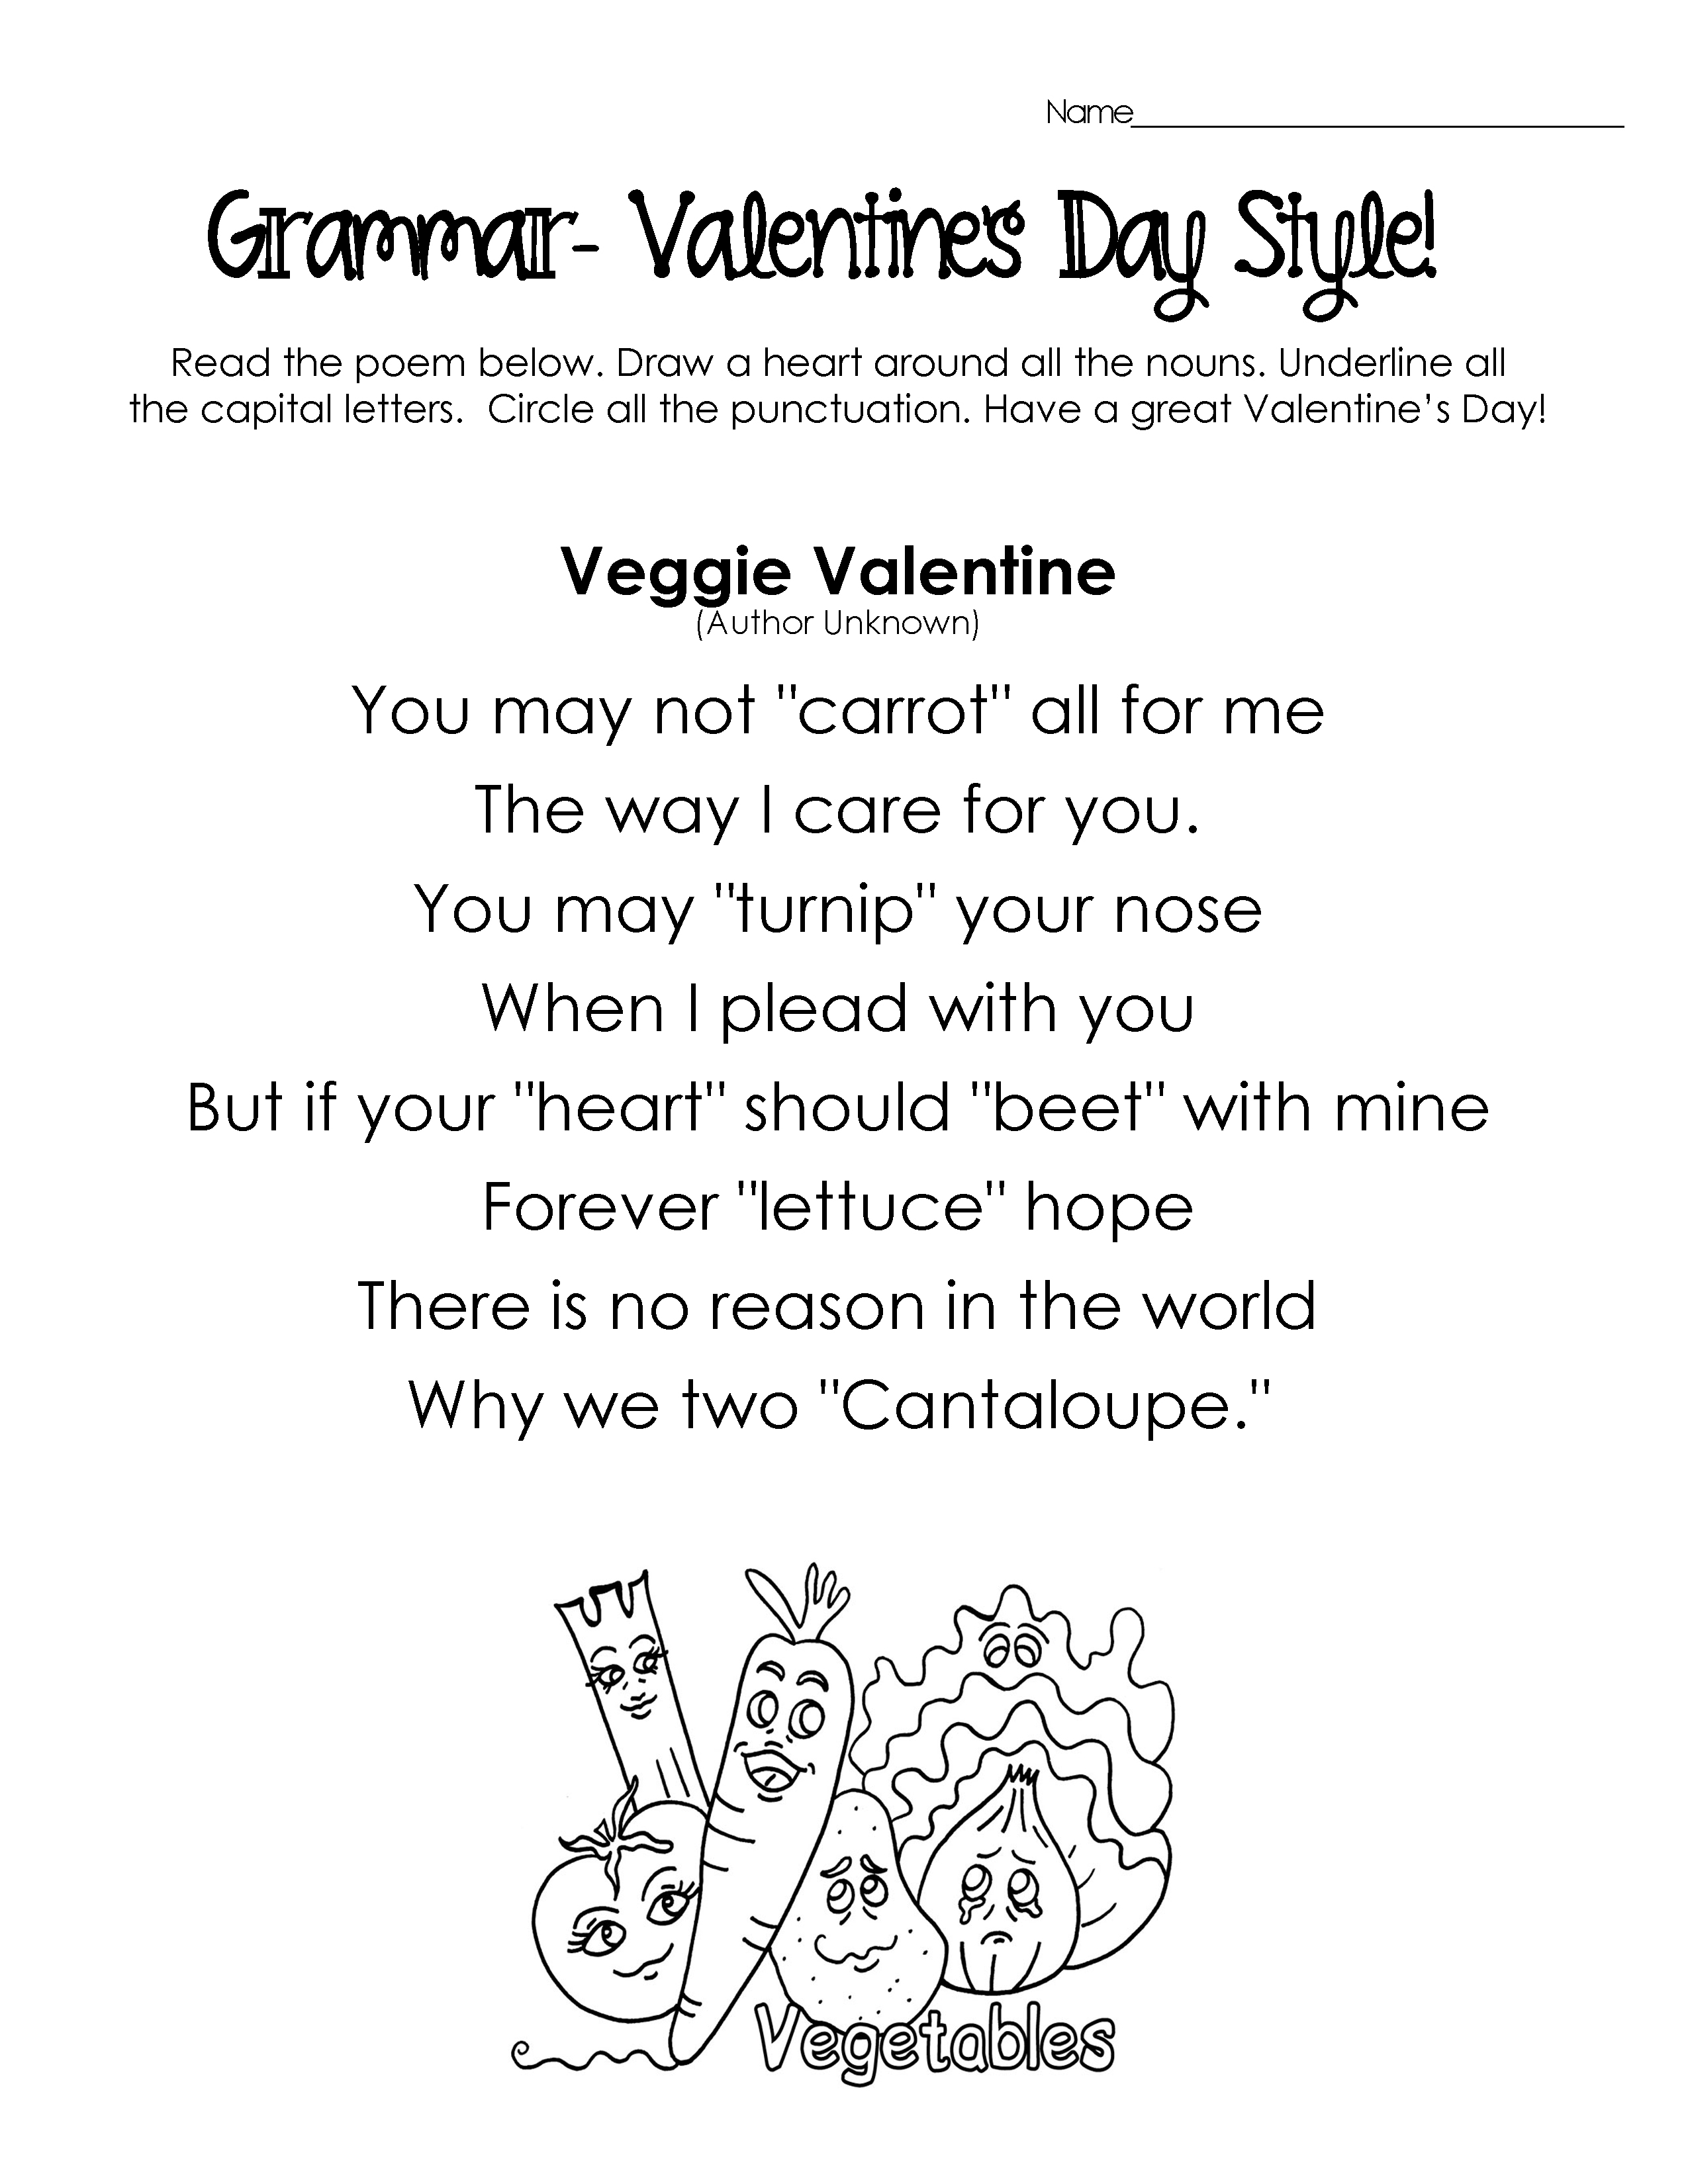 Silly Valentines Day Poems for Grammar Practice free worksheets